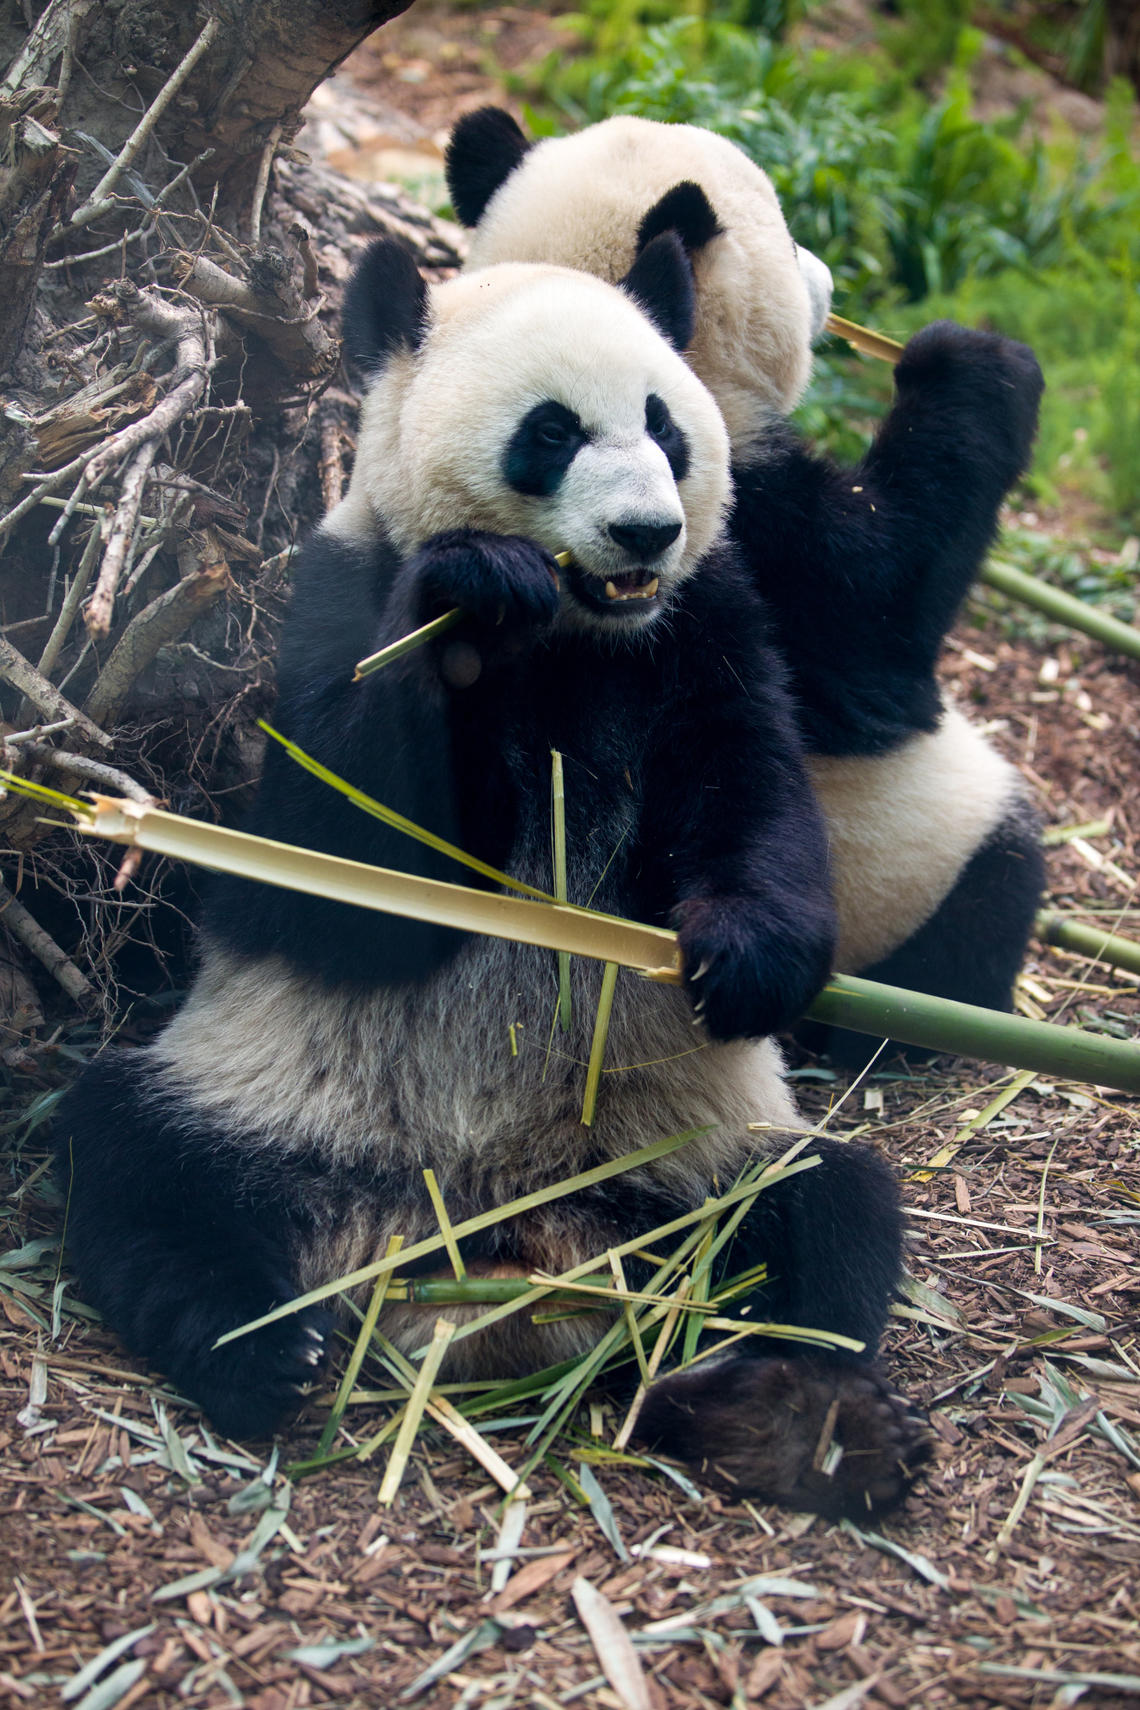 In Chinese culture, the panda is a symbol of friendship and good diplomatic relations.